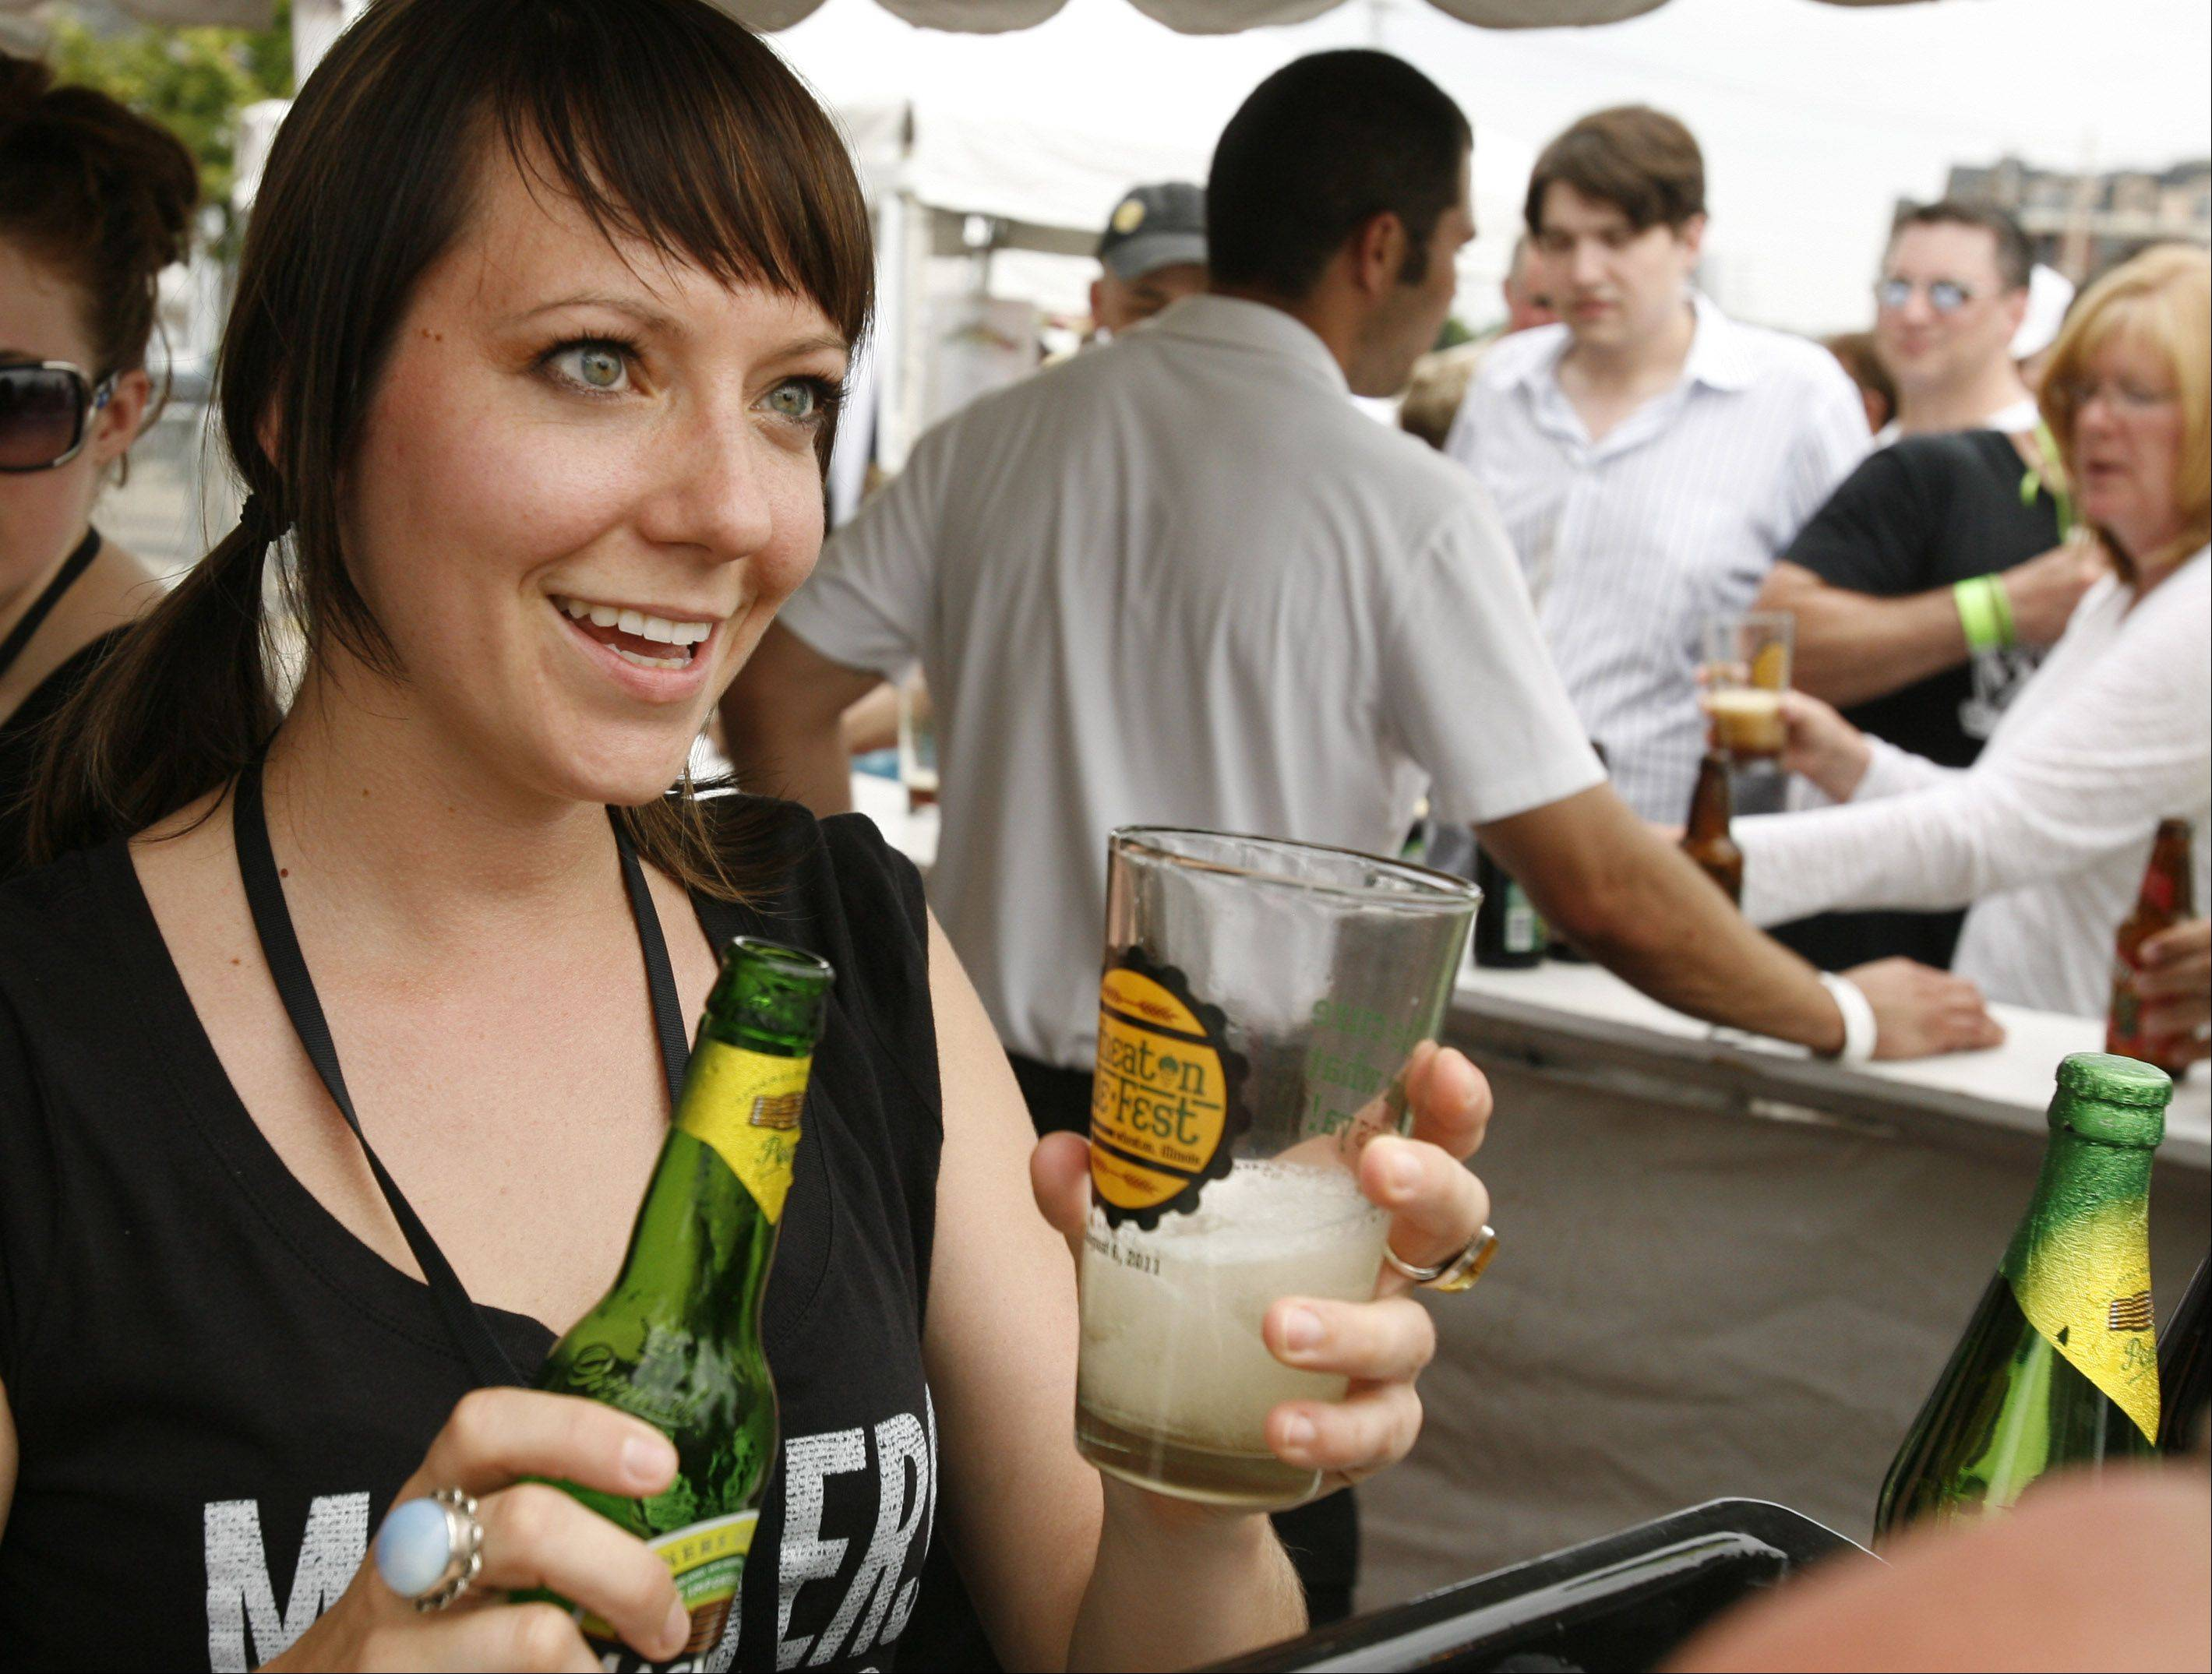 Dalia Satas serves up a Magners Irish Cider Saturday during the first Wheaton Ale Fest, an event featuring more than 100 craft beers in downtown Wheaton.